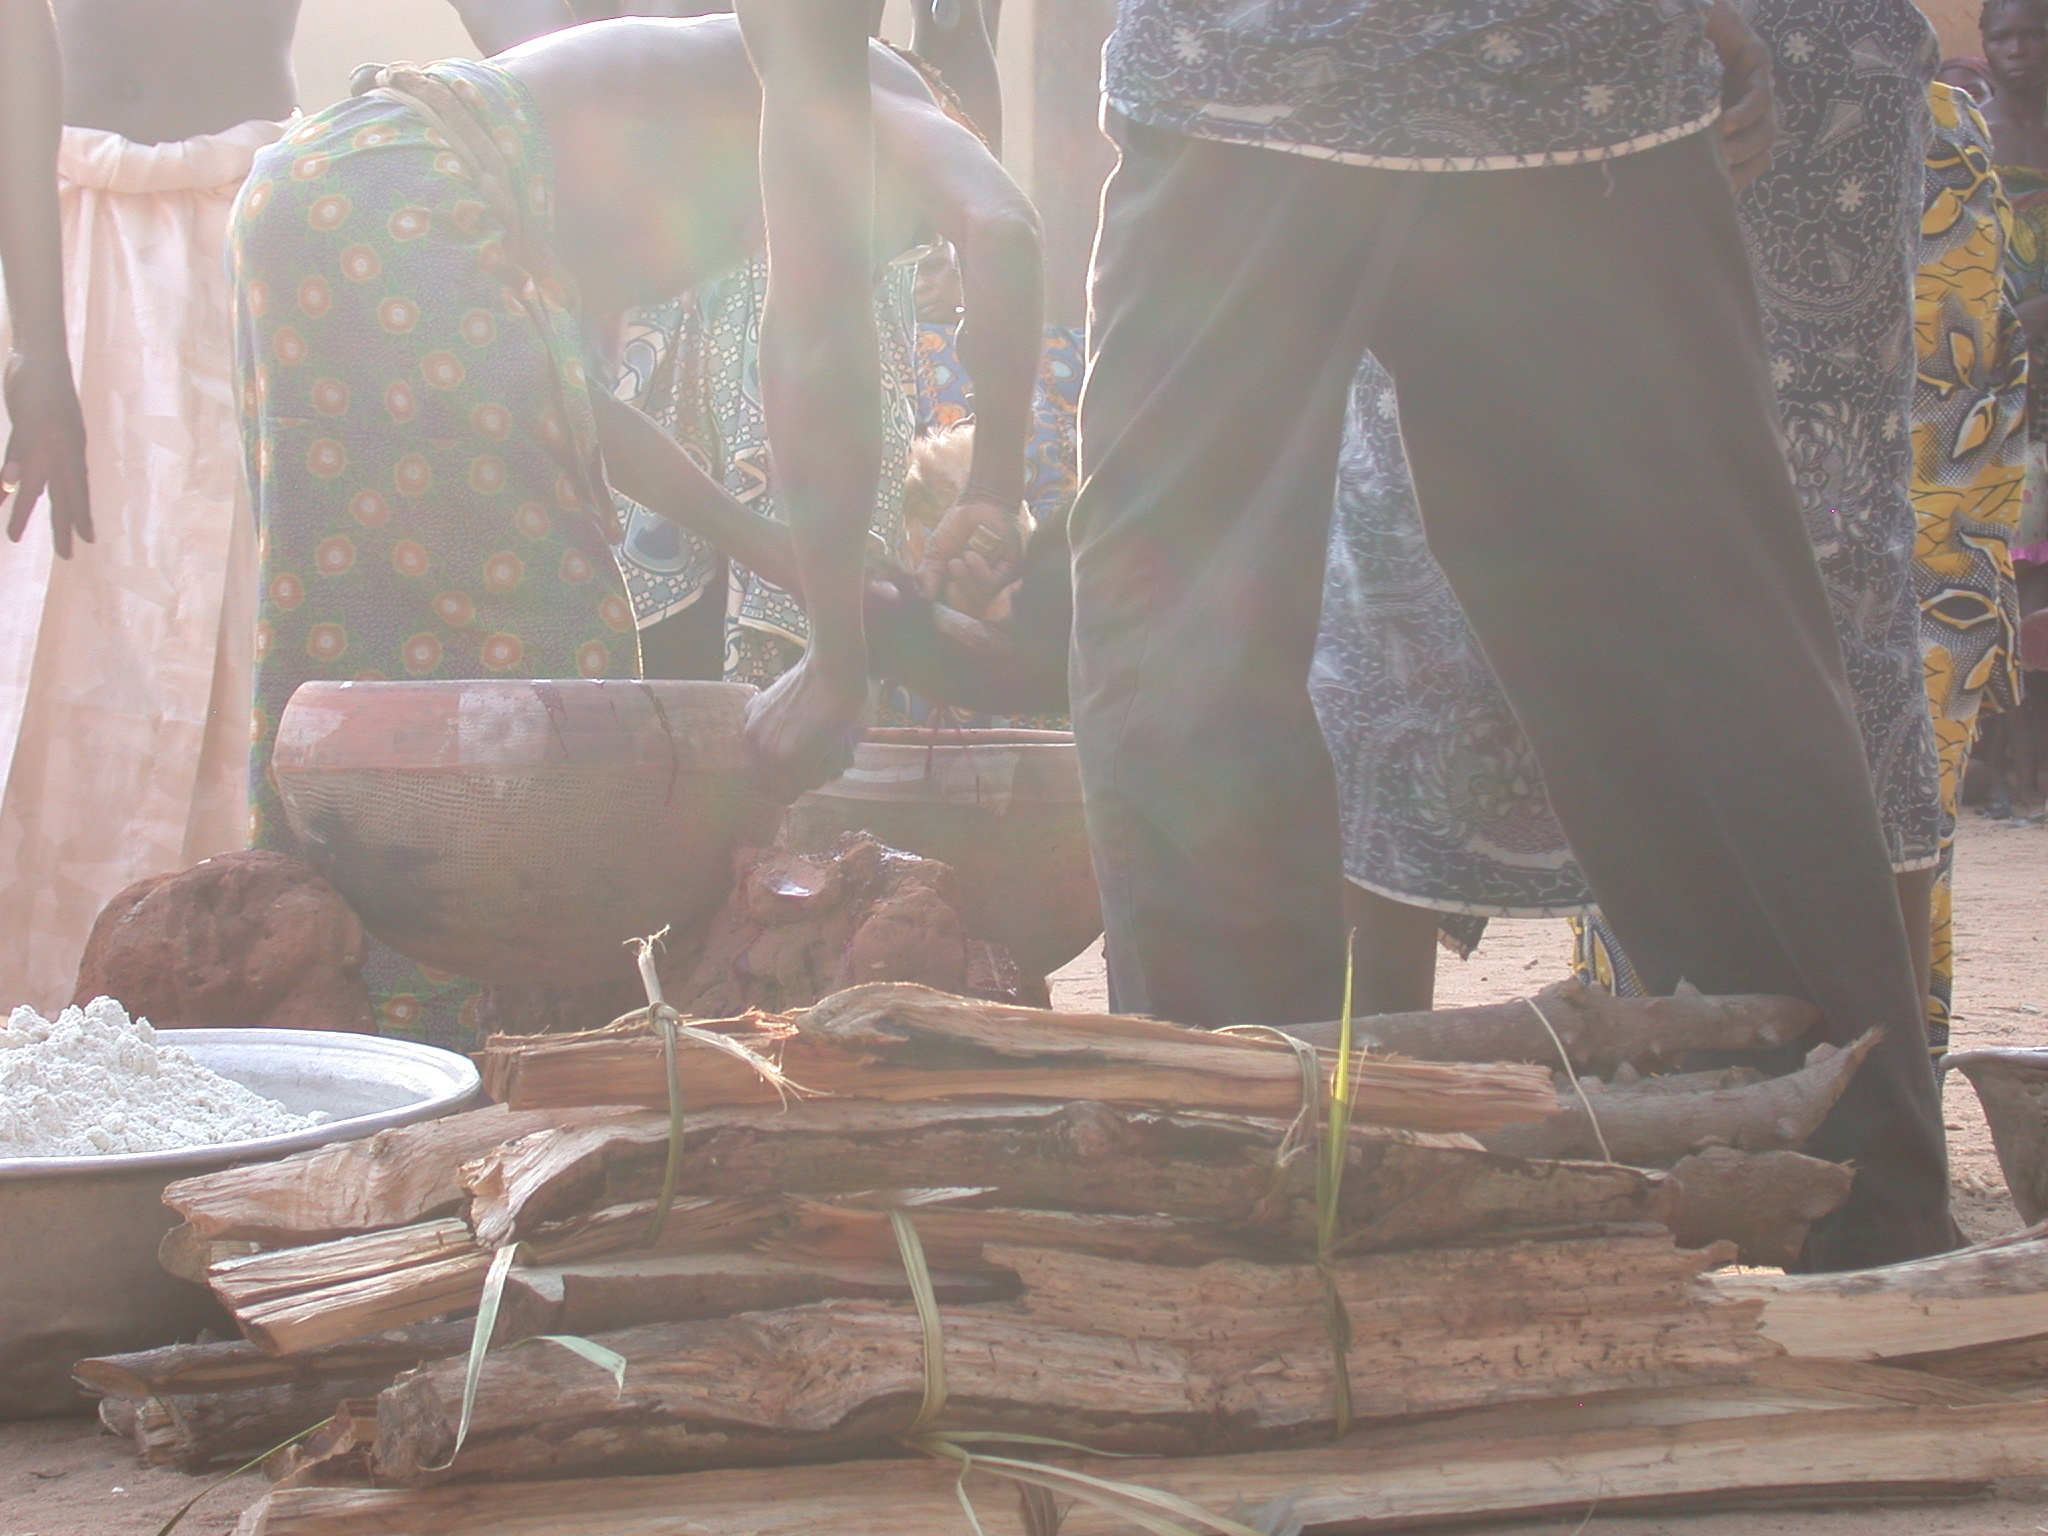 Gathering Sacrificial Goat Blood in Ceramic Pots, Vodun Ritual, Ouidah, Benin